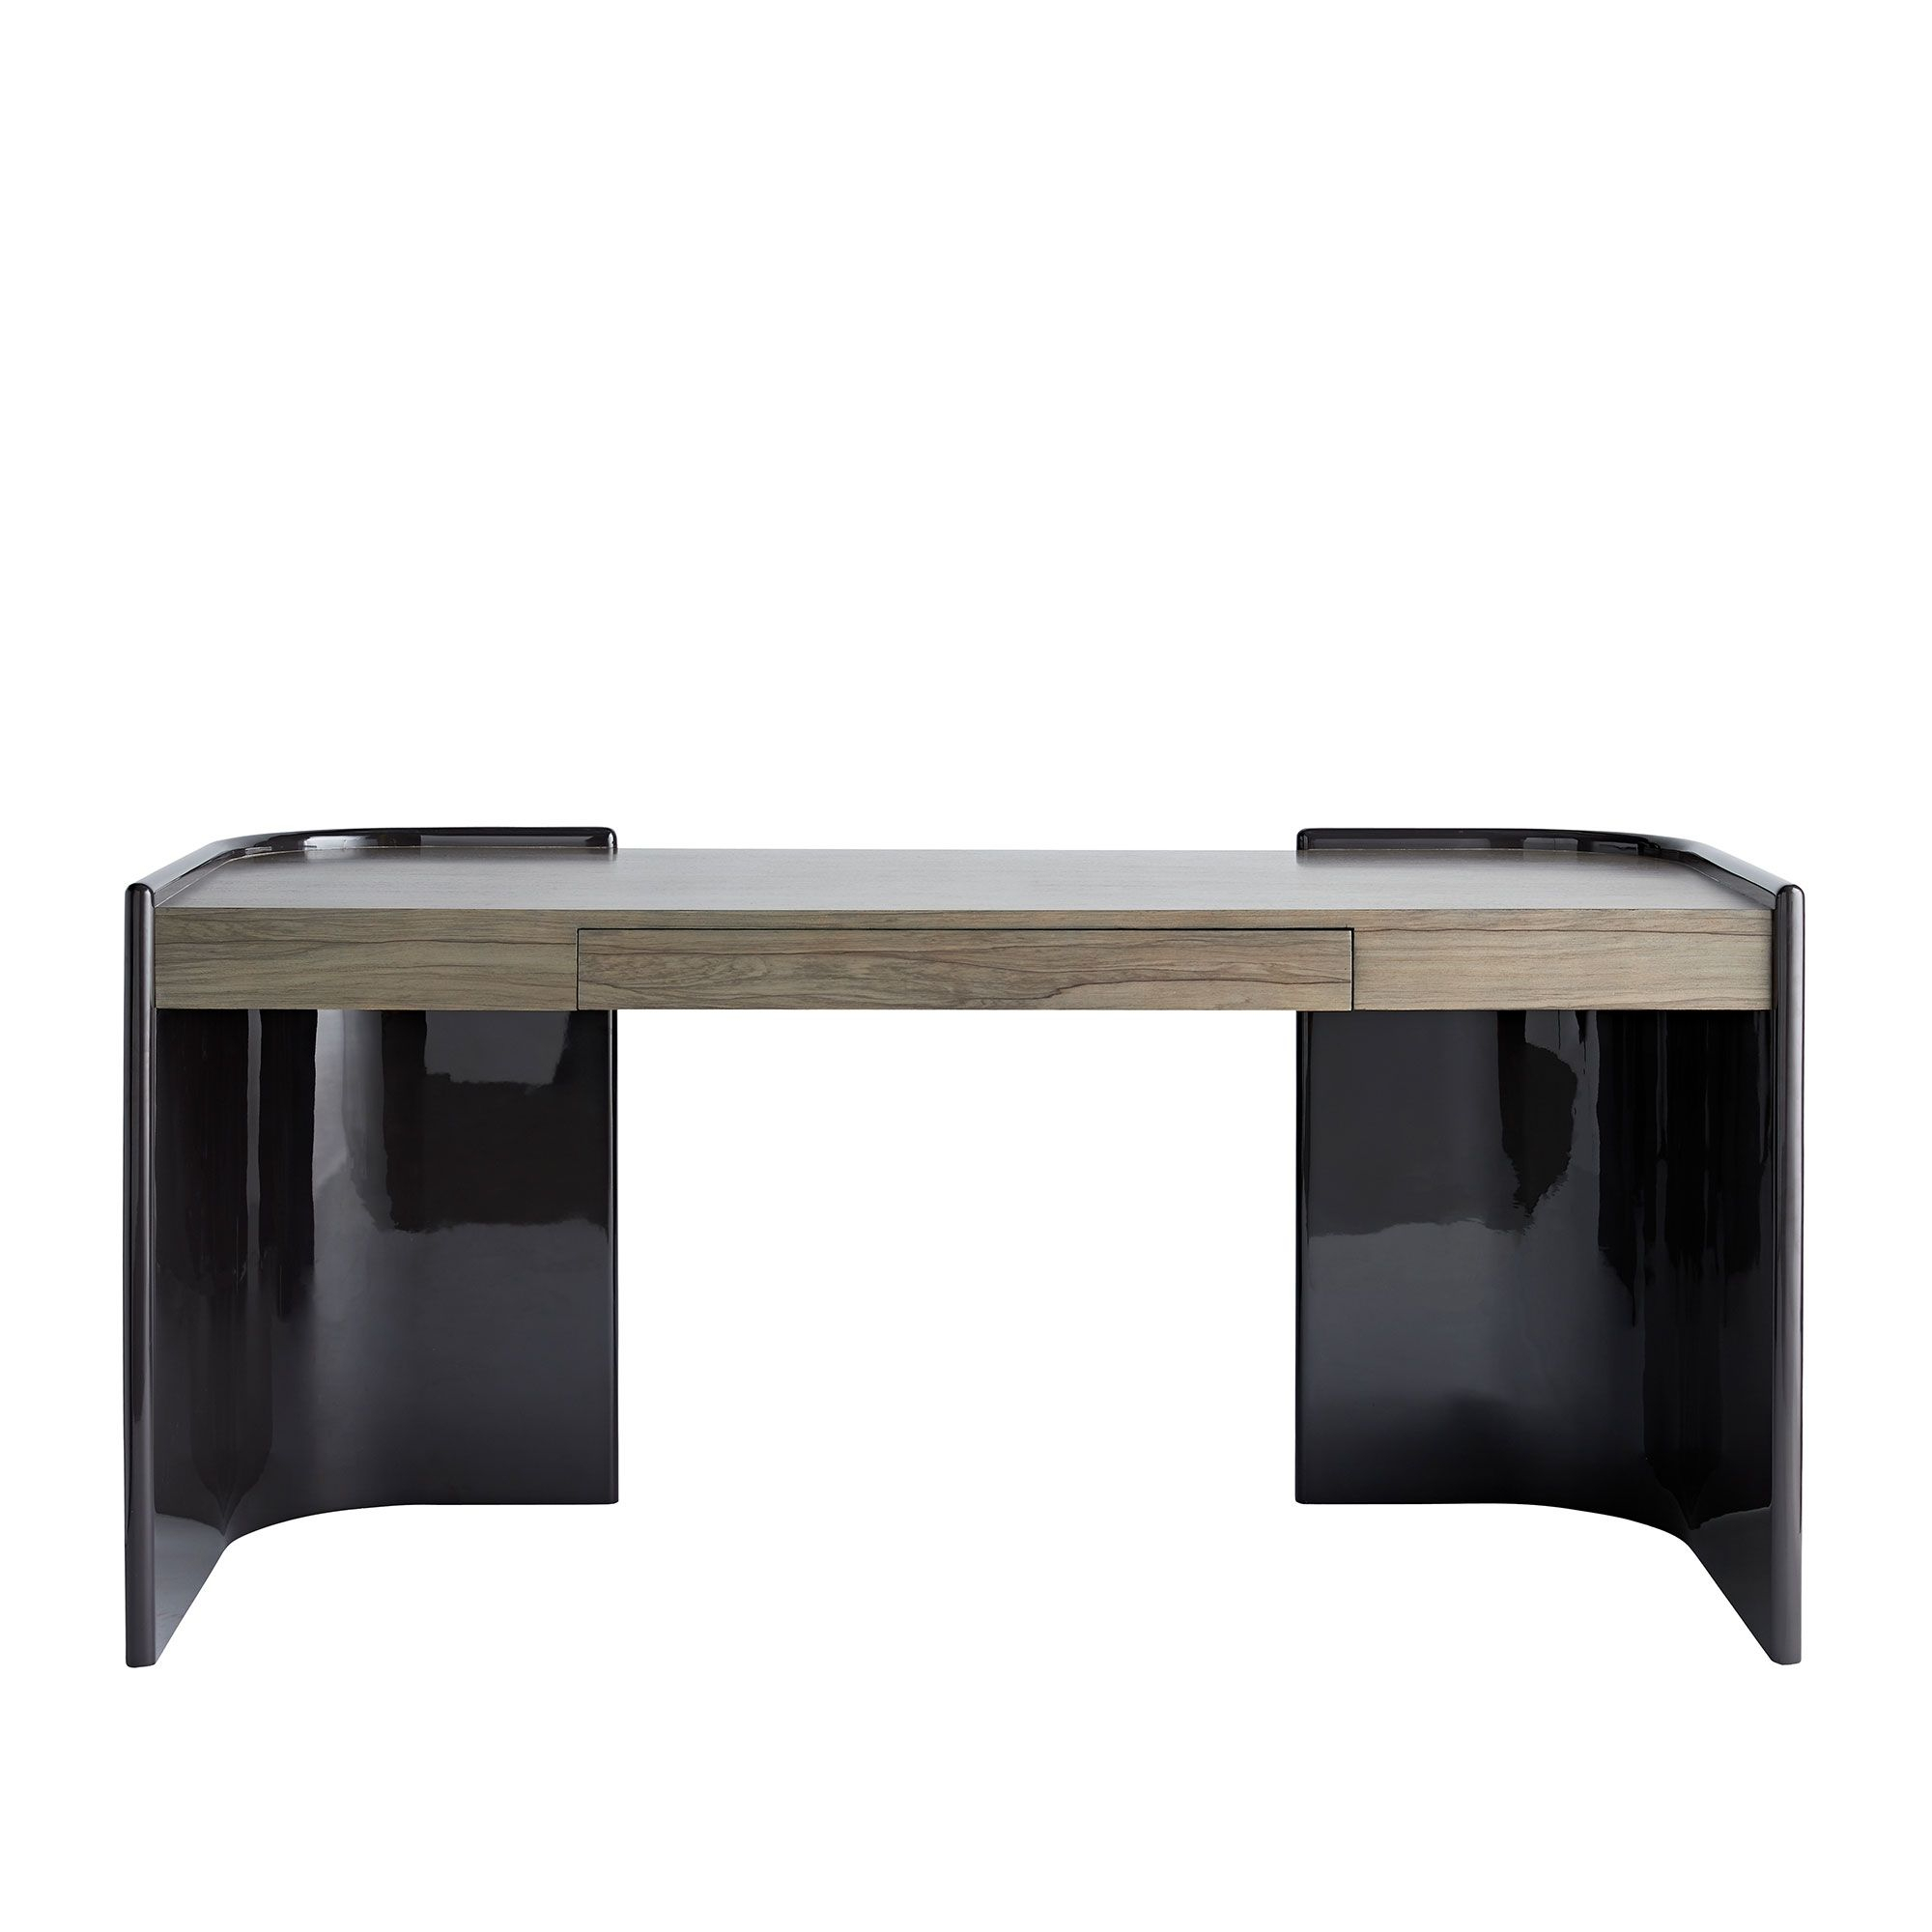 Bette Leather Ottoman, , Hi Res | Renovation Dreams | Pinterest With Parsons Clear Glass Top & Stainless Steel Base 48x16 Console Tables (View 16 of 30)